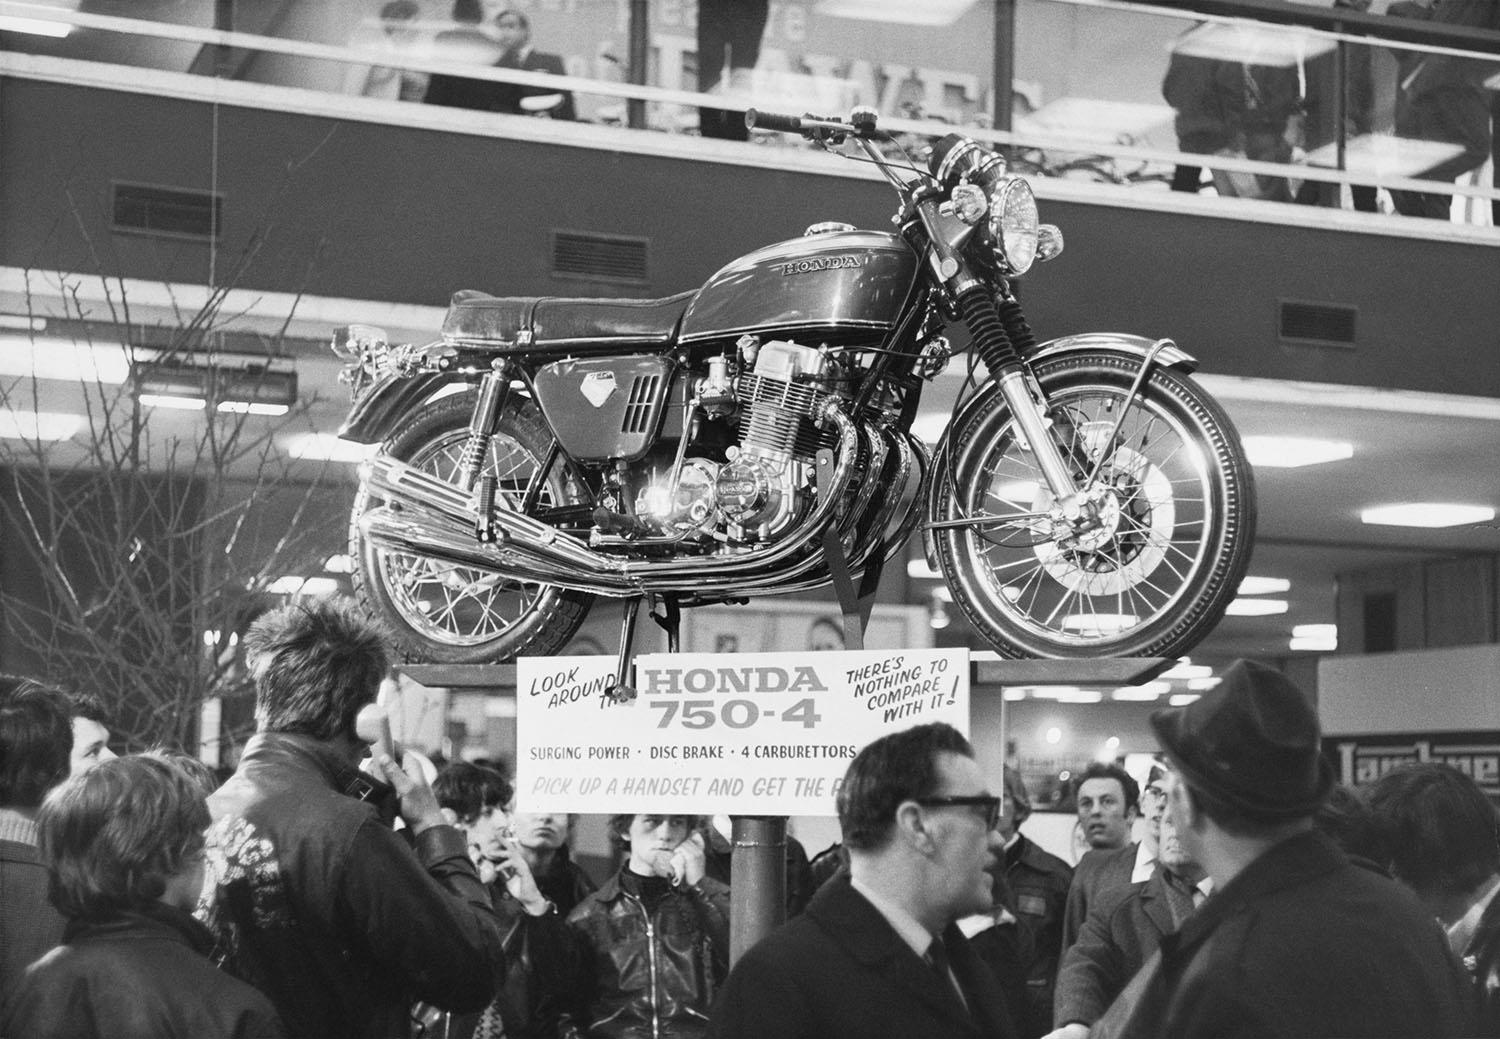 Honda CB750 on display in 1969